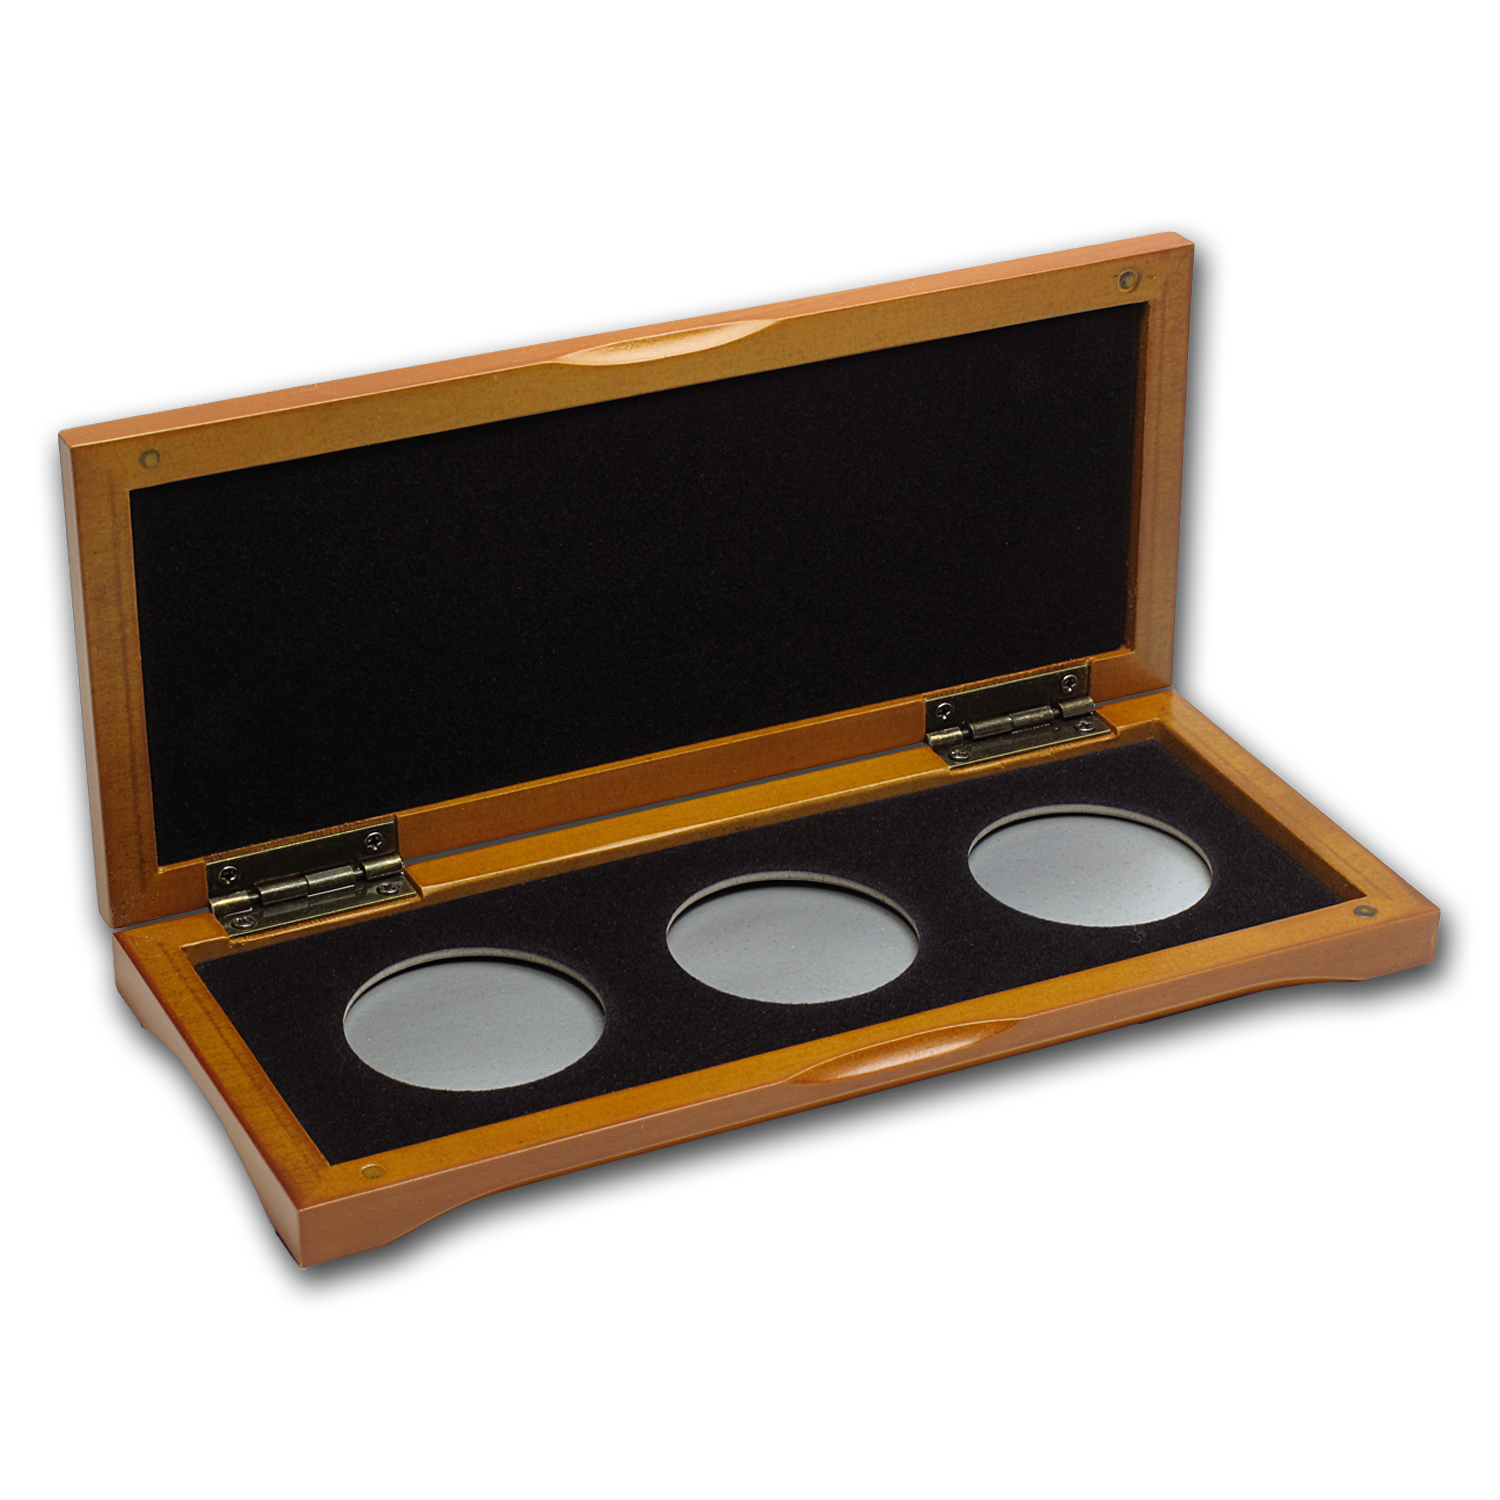 3 coin Wood Presentation Box - Fits Up to 40mm